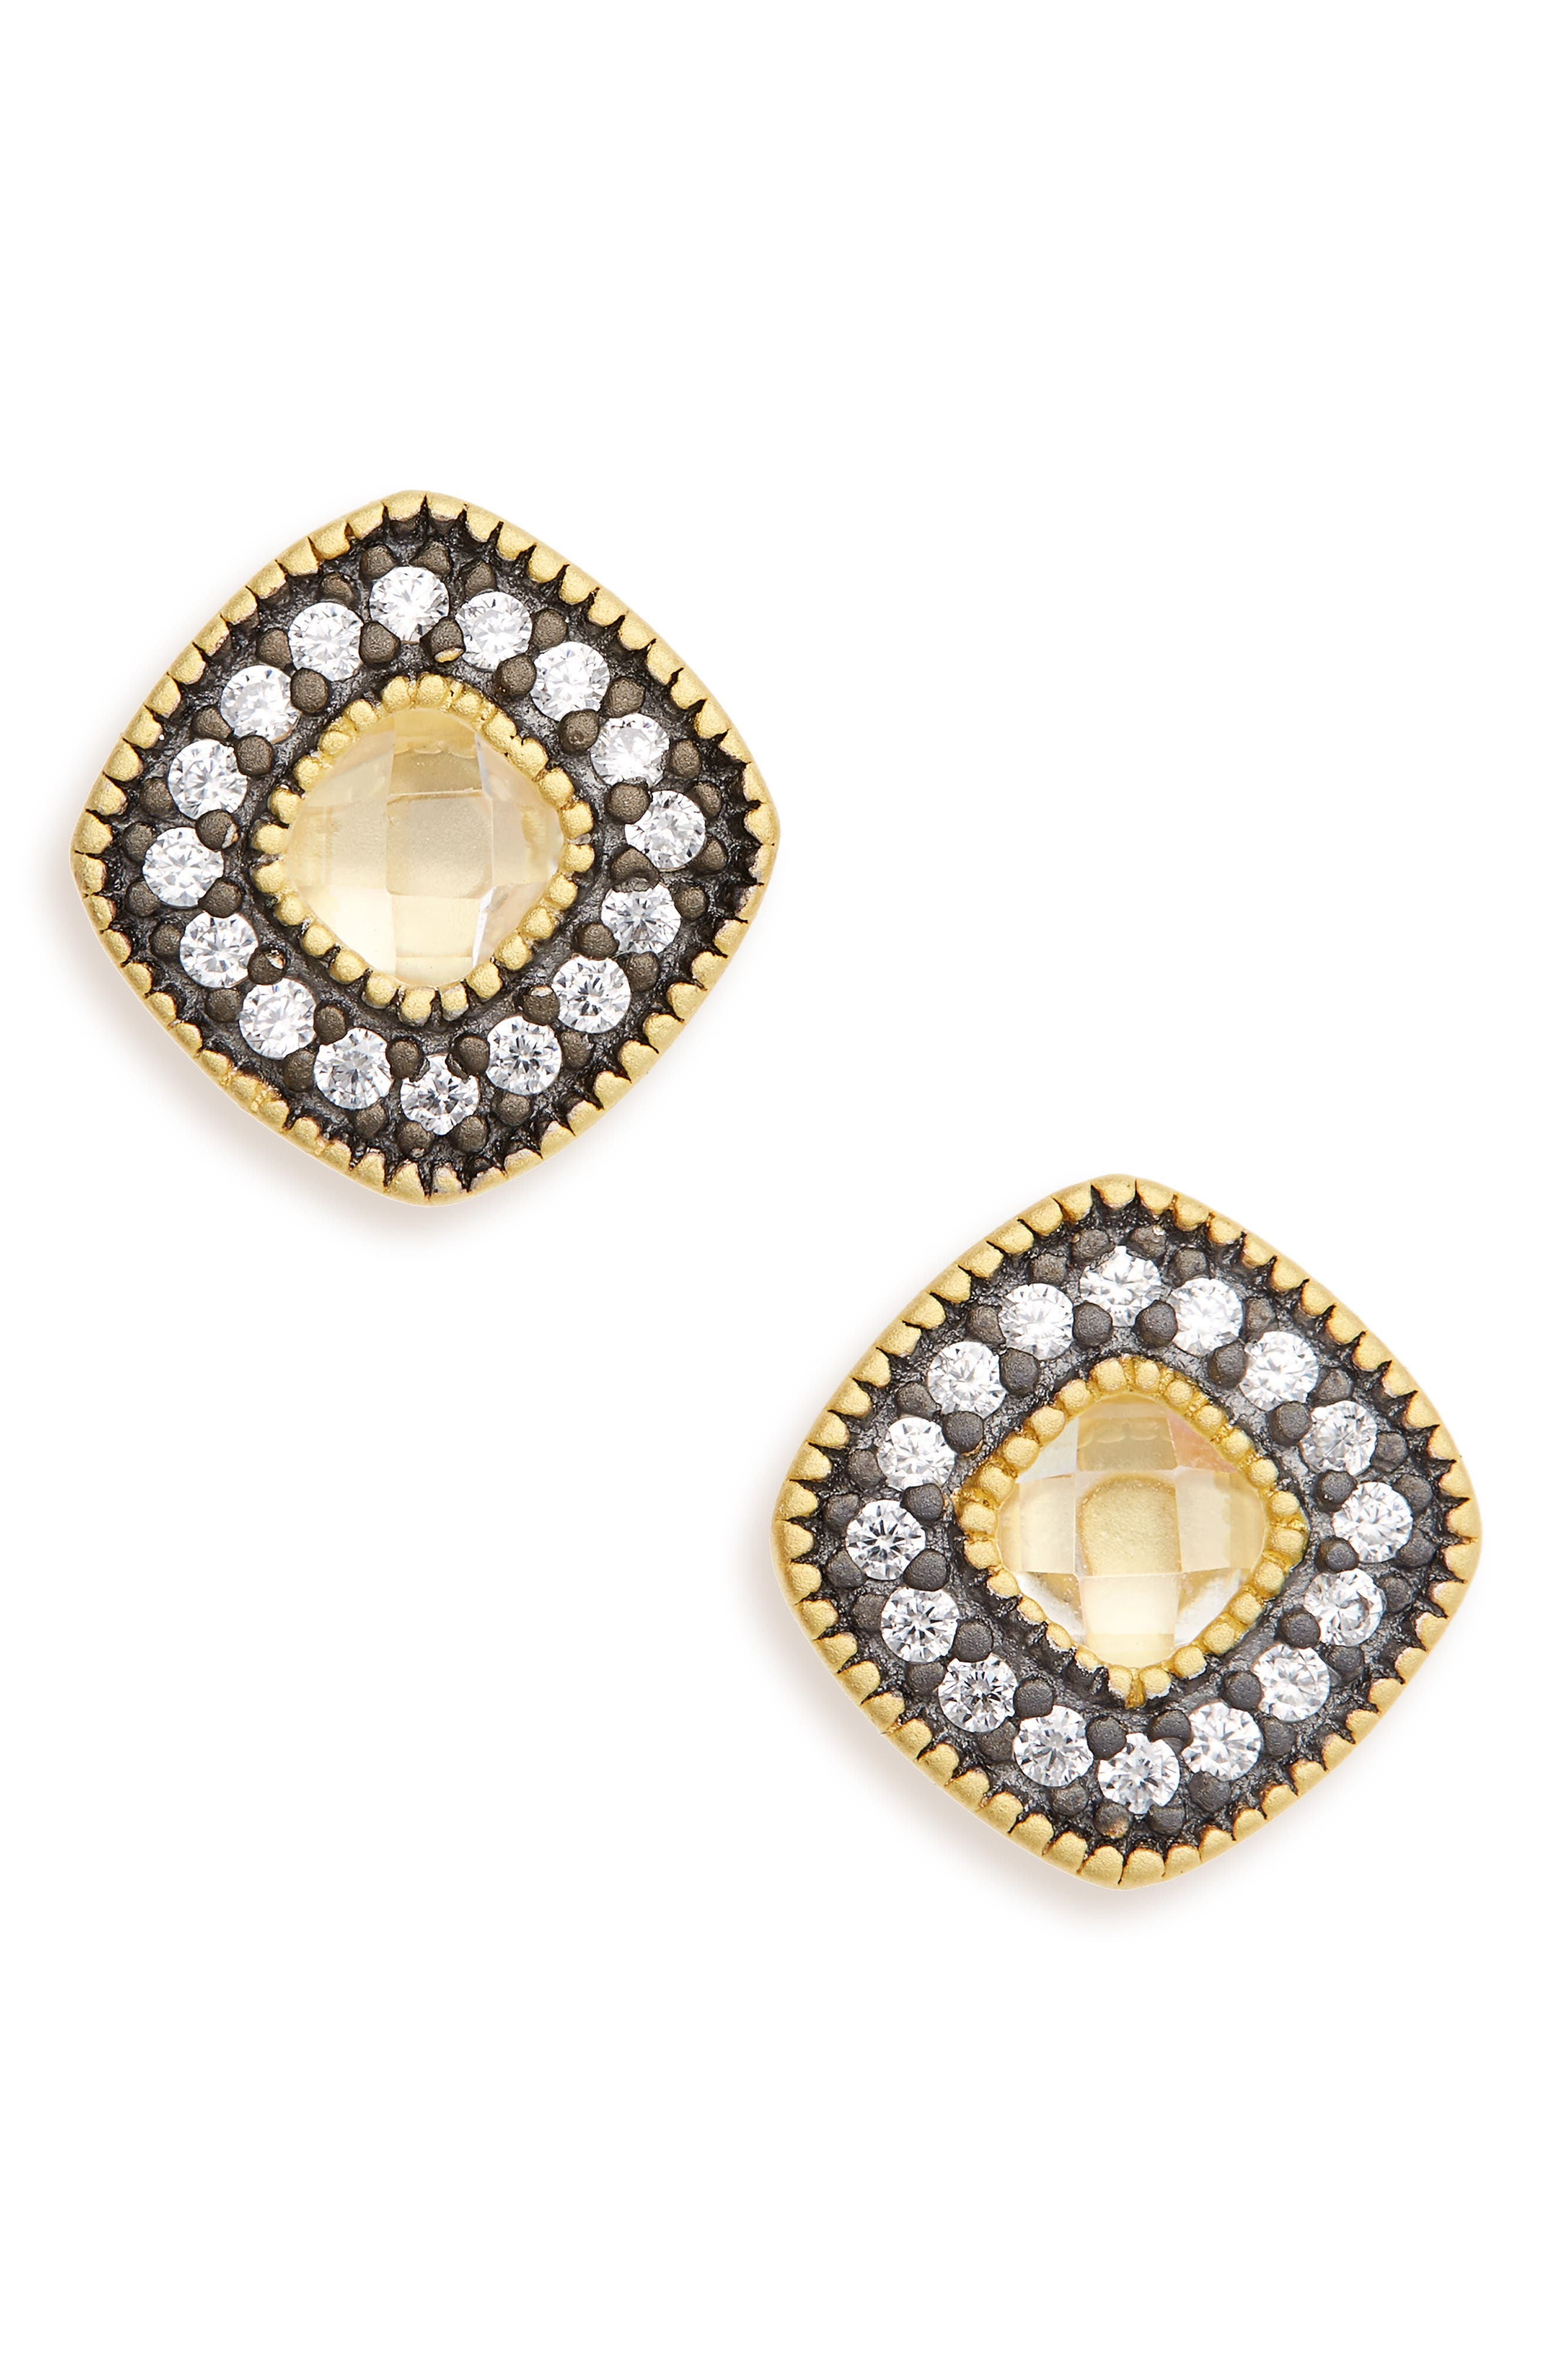 Single Stud Earrings,                             Main thumbnail 1, color,                             GOLD/ BLACK